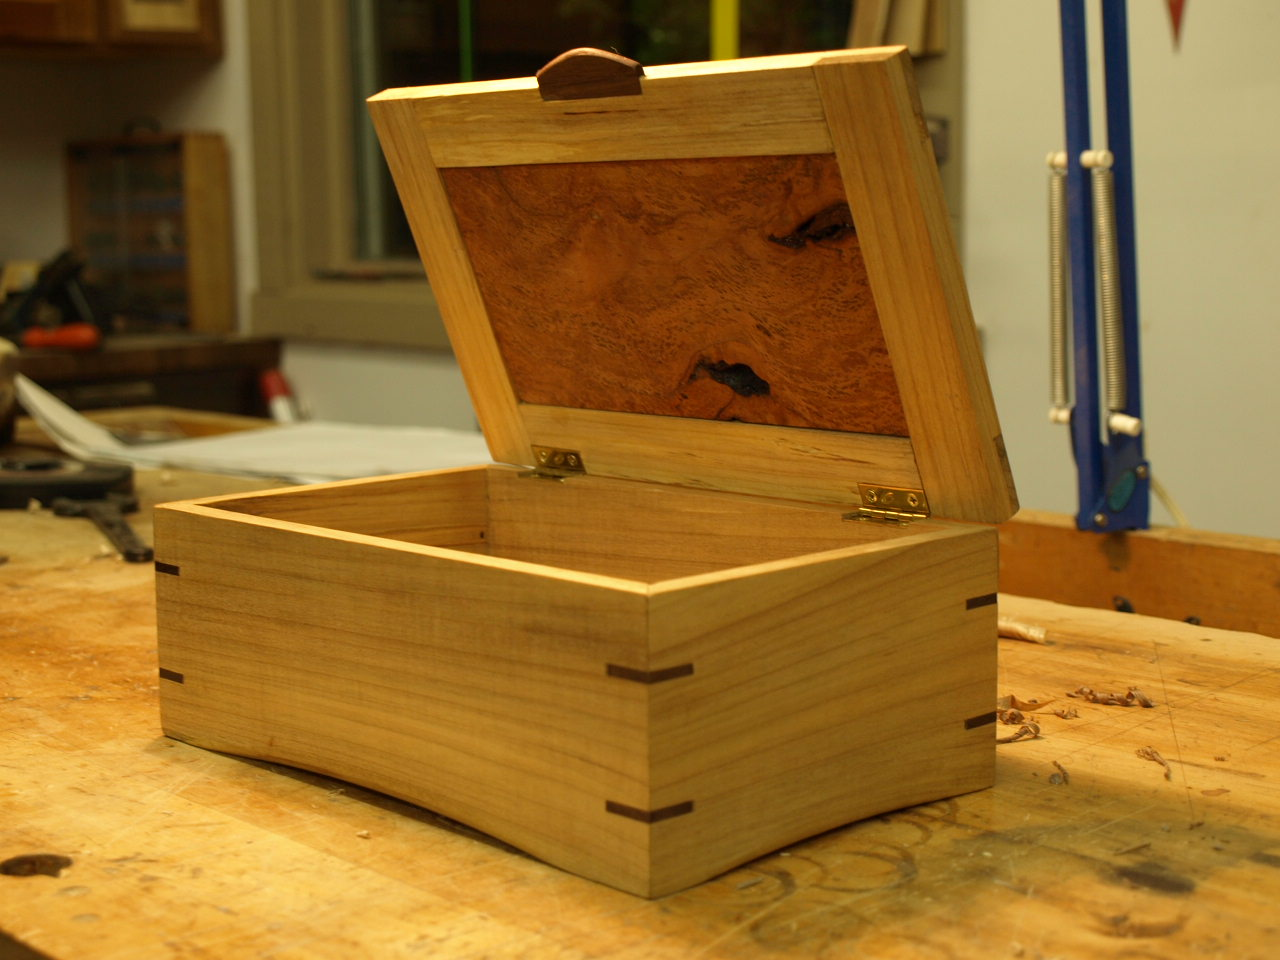 taylor benchworks simple jewelry box for alex. Black Bedroom Furniture Sets. Home Design Ideas